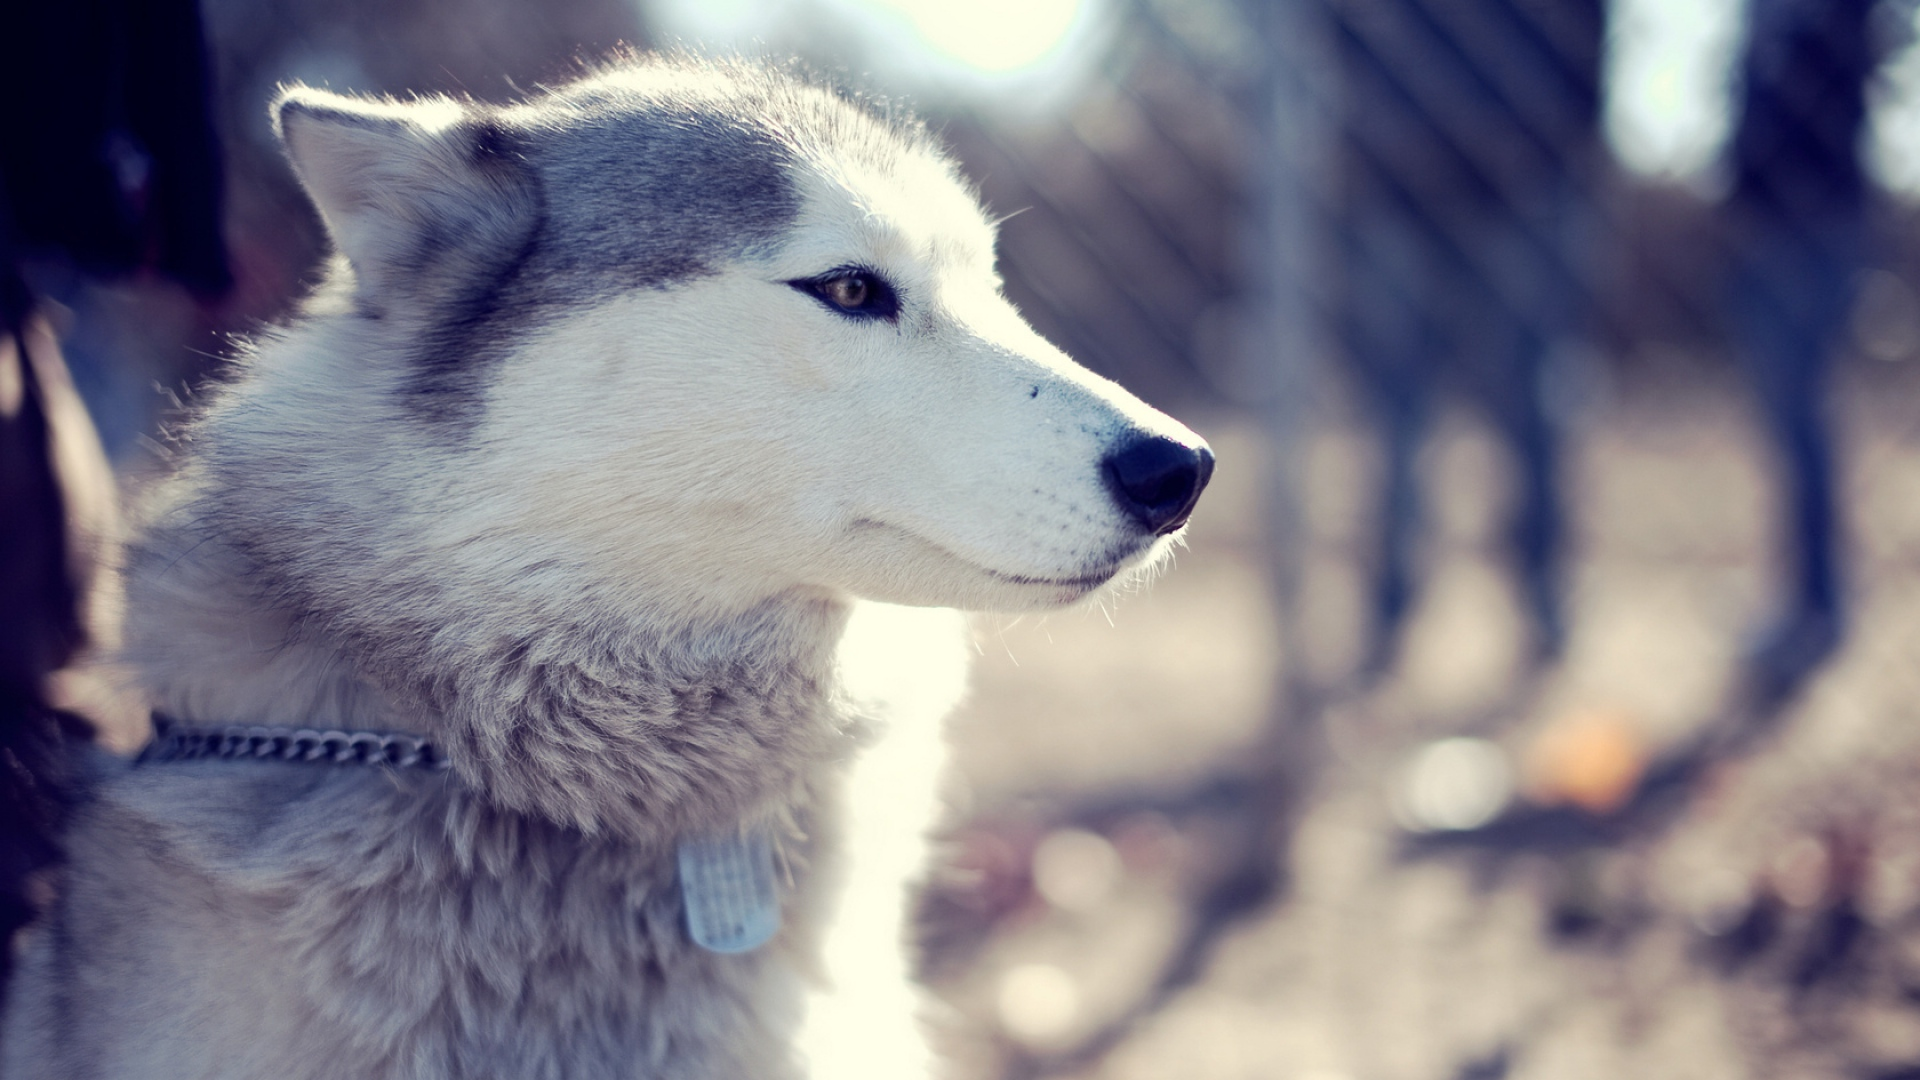 Download Wallpaper 1920x1080 Husky, Dog, Muzzle, Blue